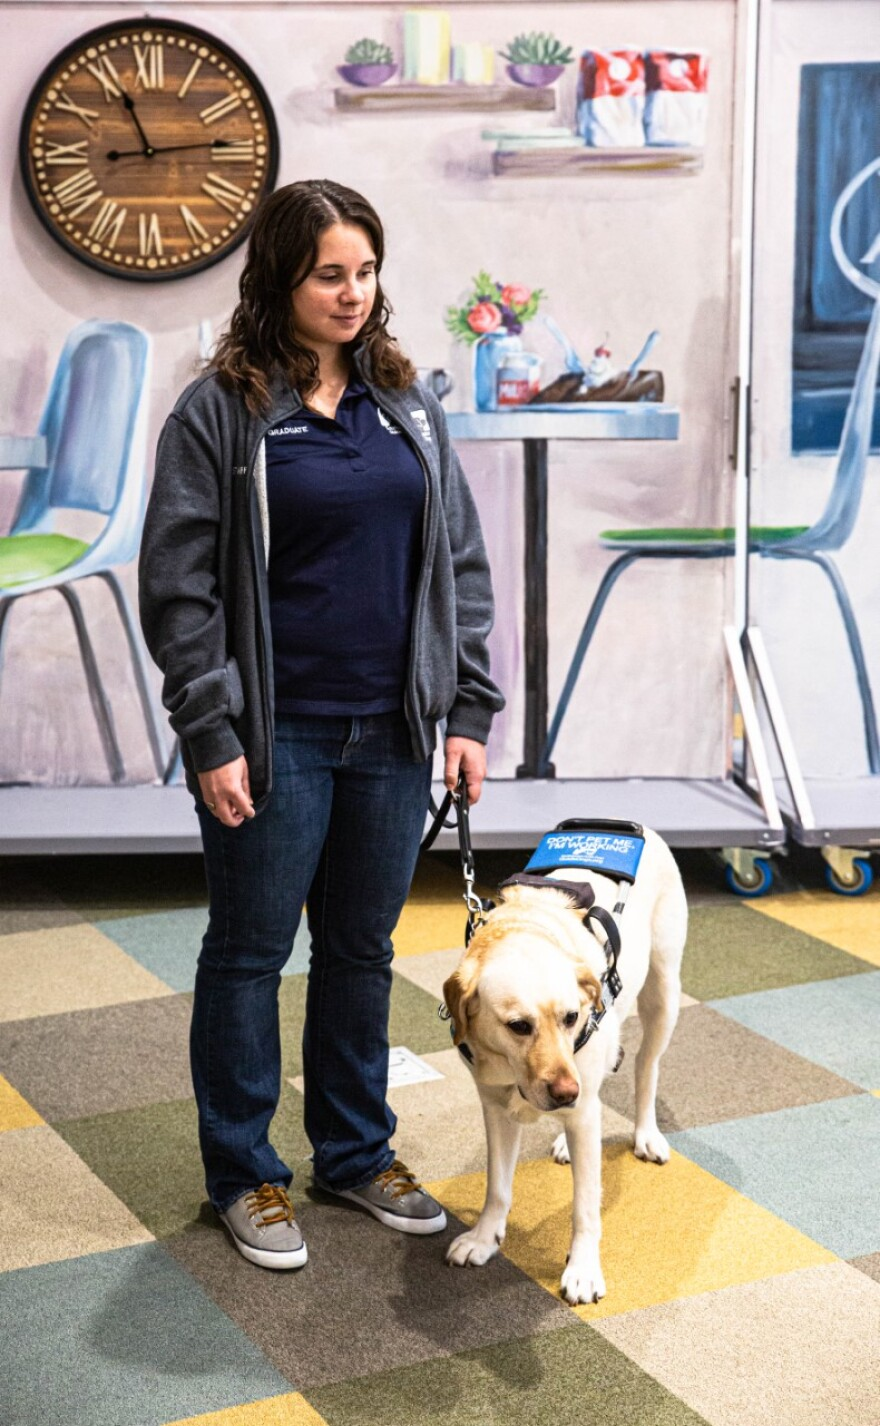 Katie McCoy and her guide dog, Bristol.